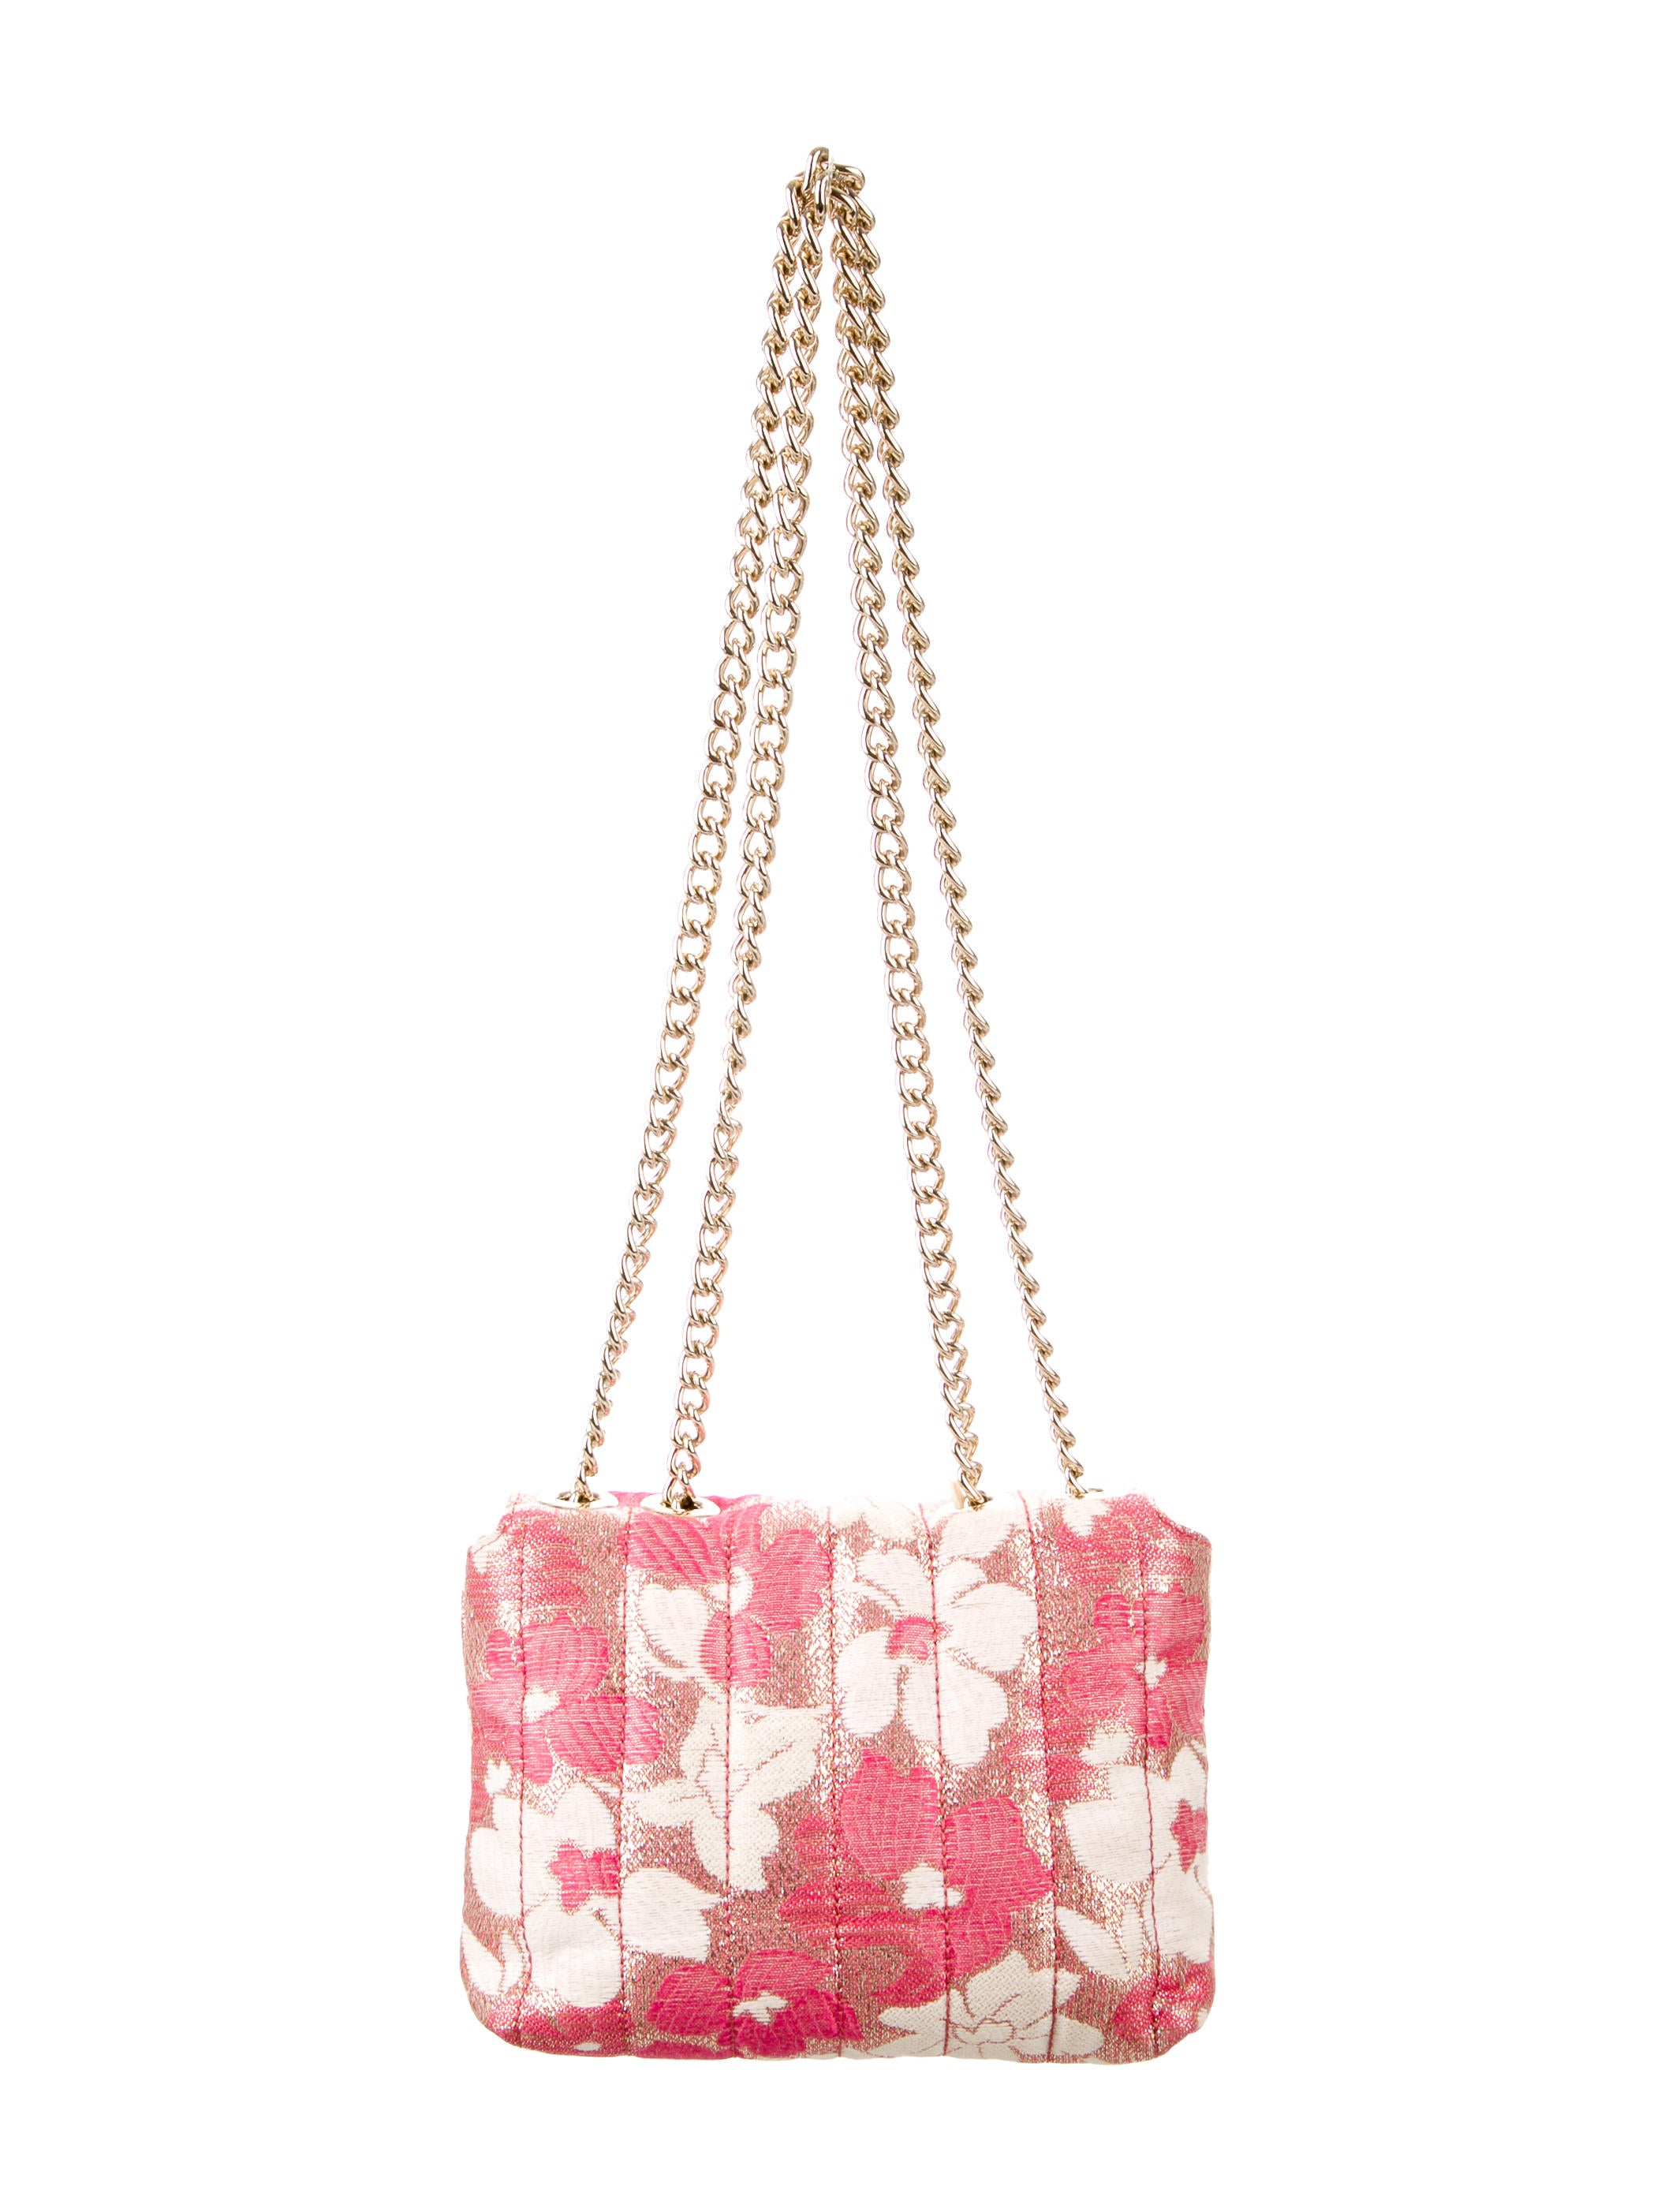 Kate Spade New York Floral Brocade Crossbody Bag - Handbags - WKA55780 | The RealReal